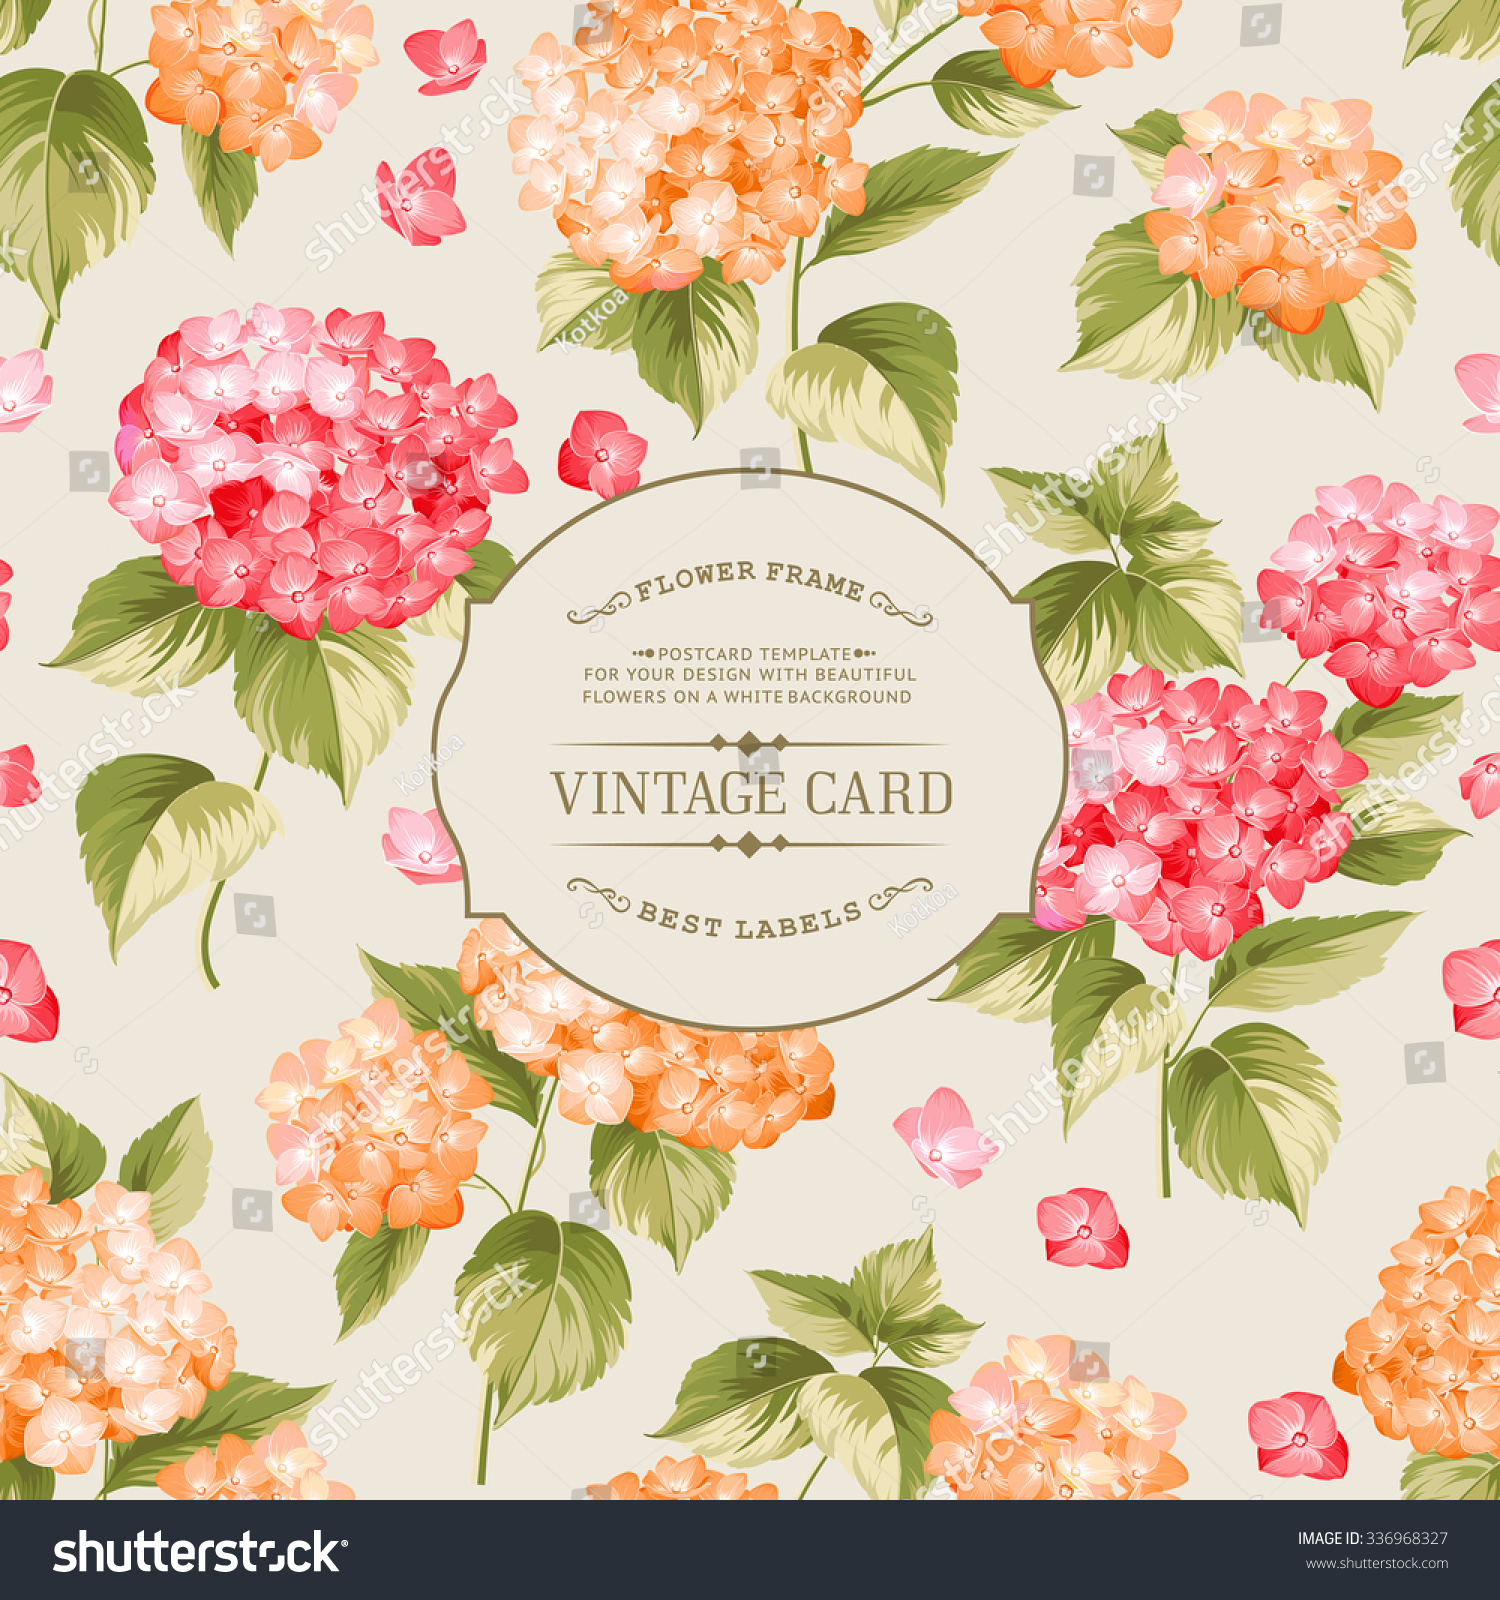 Book Cover Flower : Vintage floral label elegant book cover stock vector